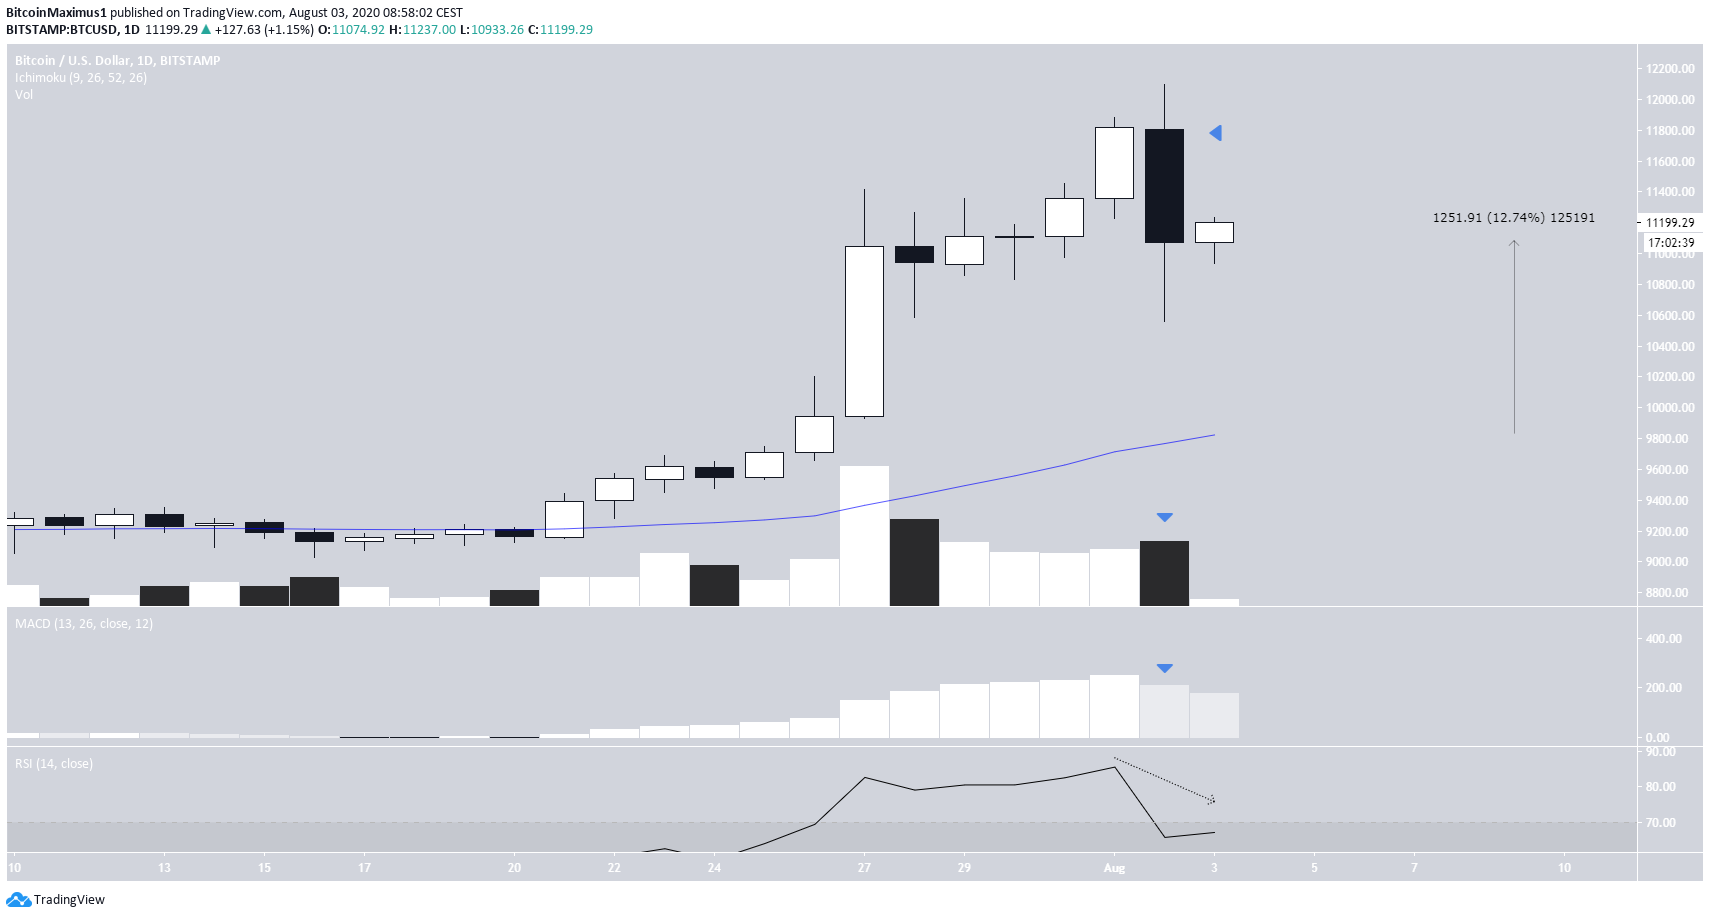 Bitcoin's Daily Trend